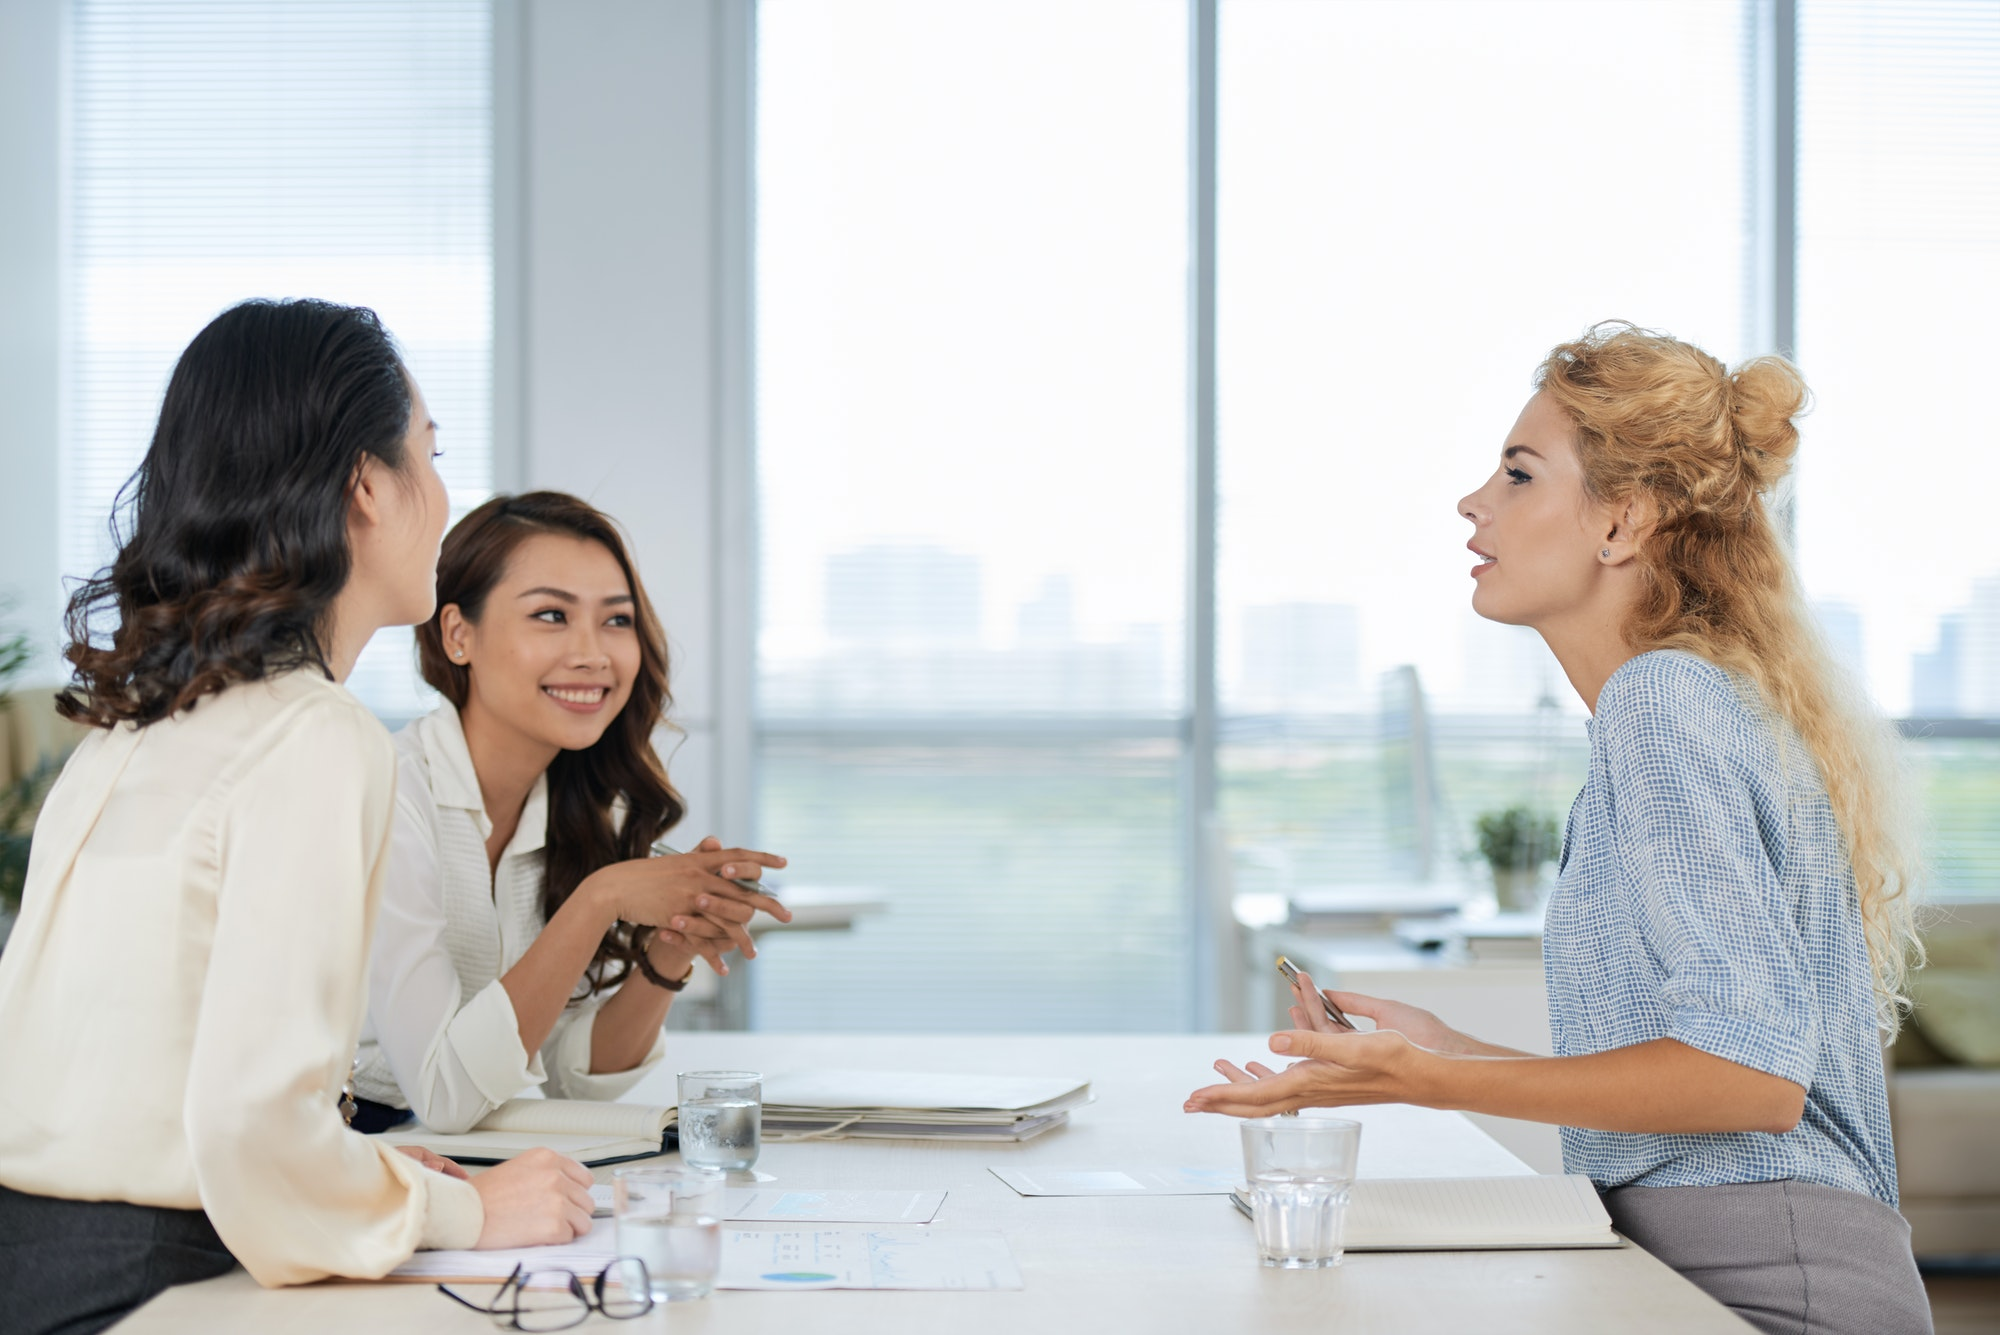 Three female co-workers having a discussion around a table